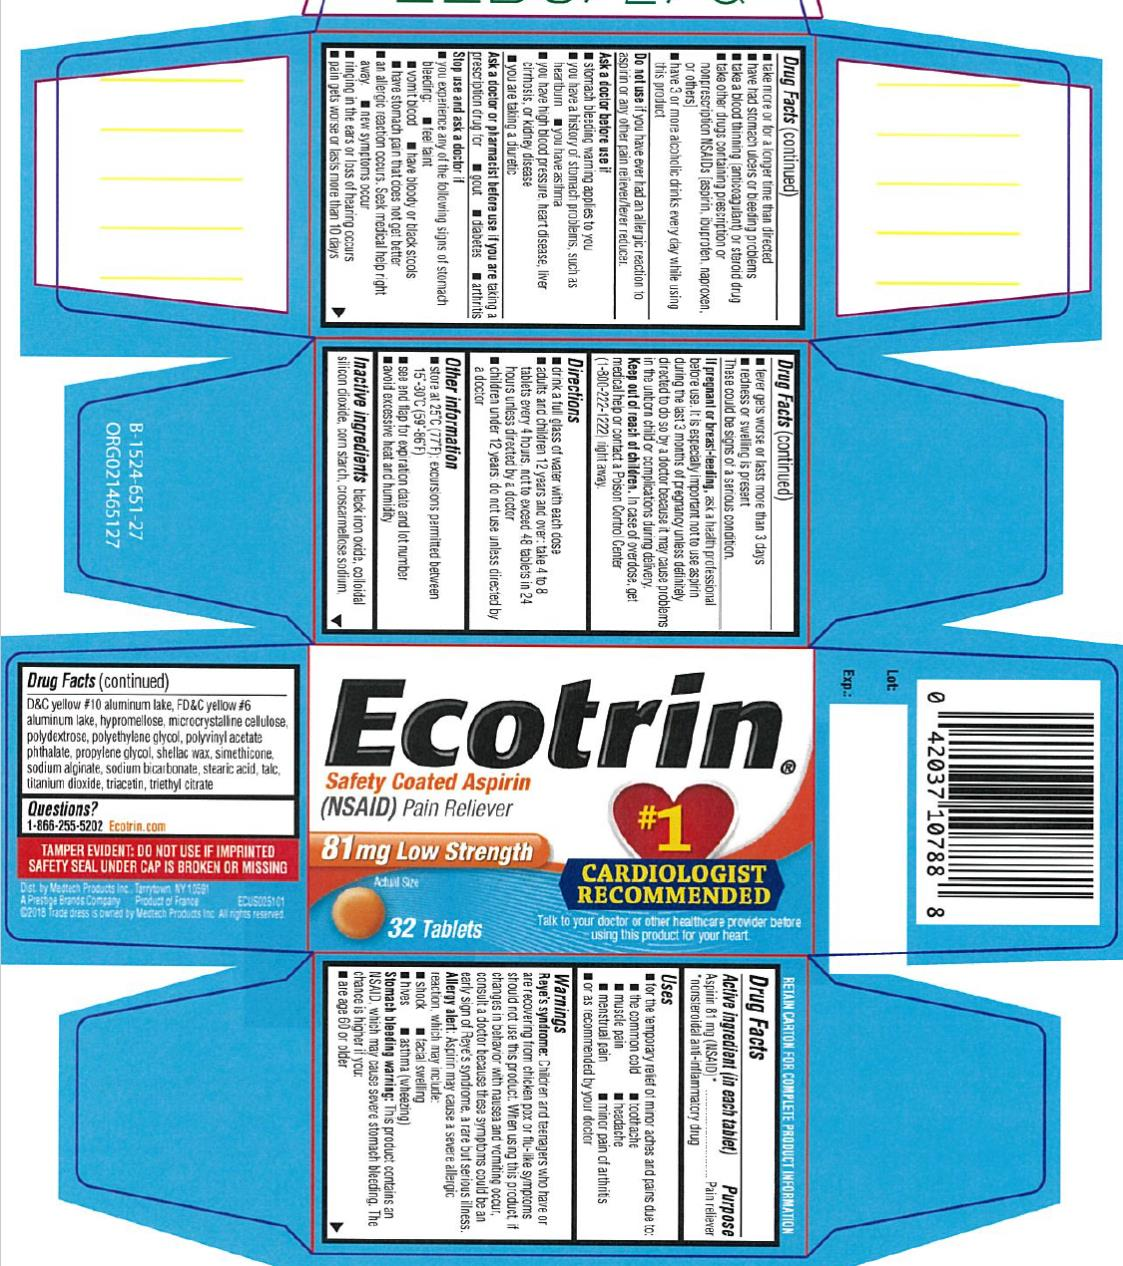 Ecotrin (Aspirin) Tablet, Coated [Medtech Products Inc.]